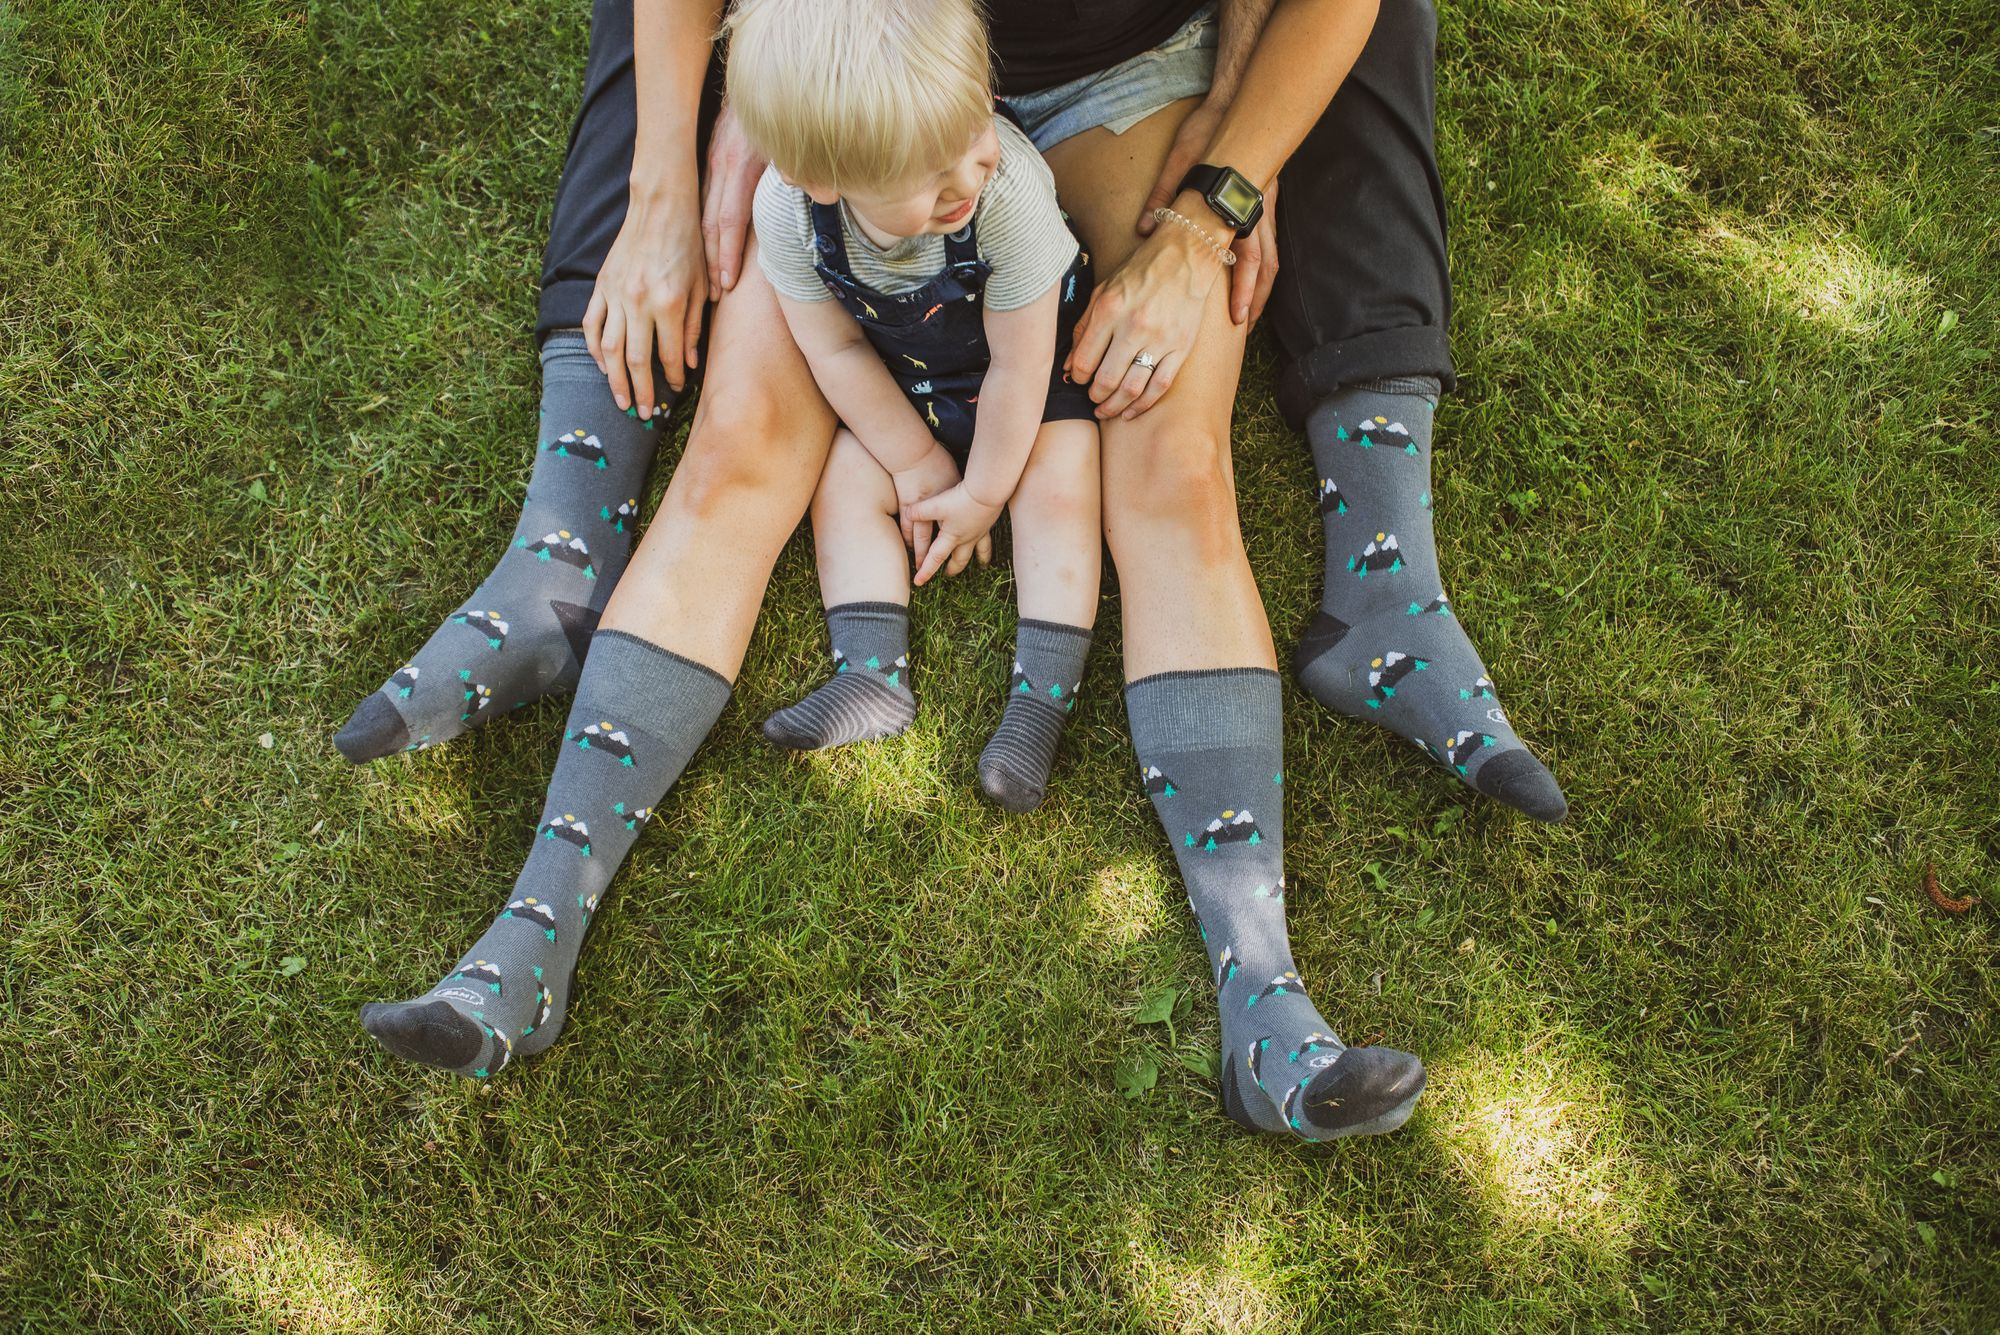 Matching Tree Apparel: Ethically Made Clothing for You and Your Family